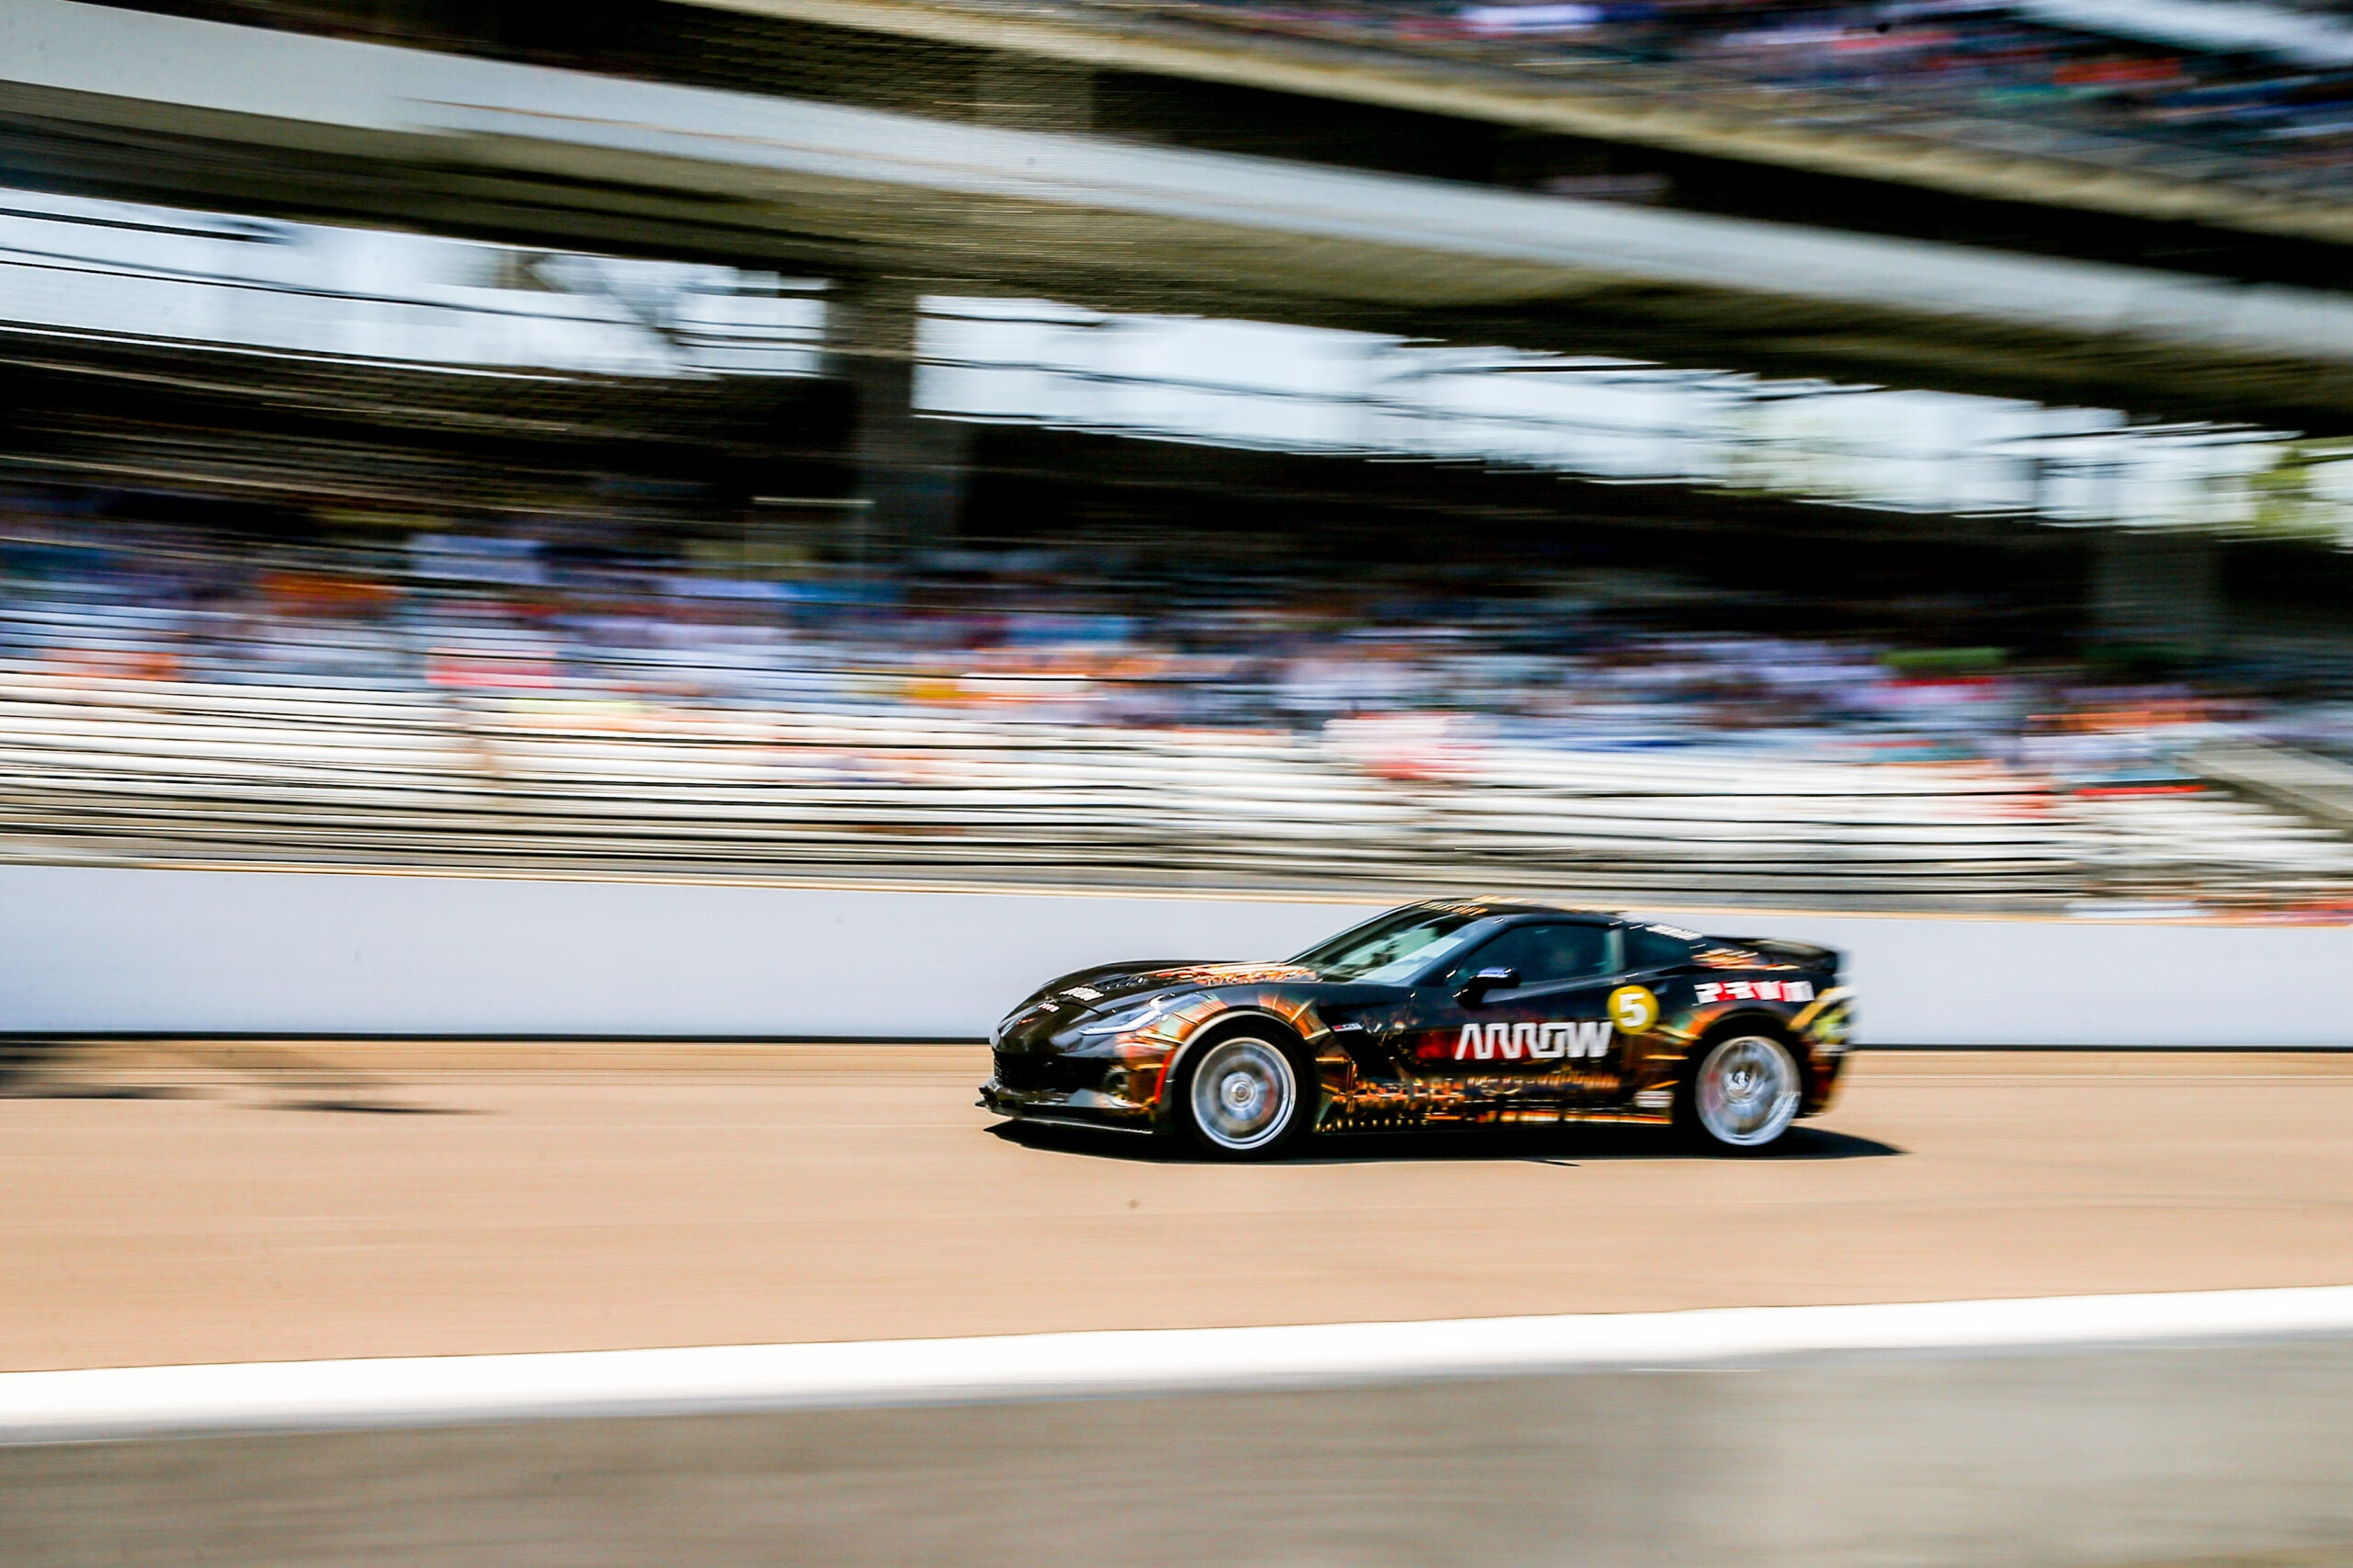 Internet of Things Project Allows Quadriplegic Driver to Race